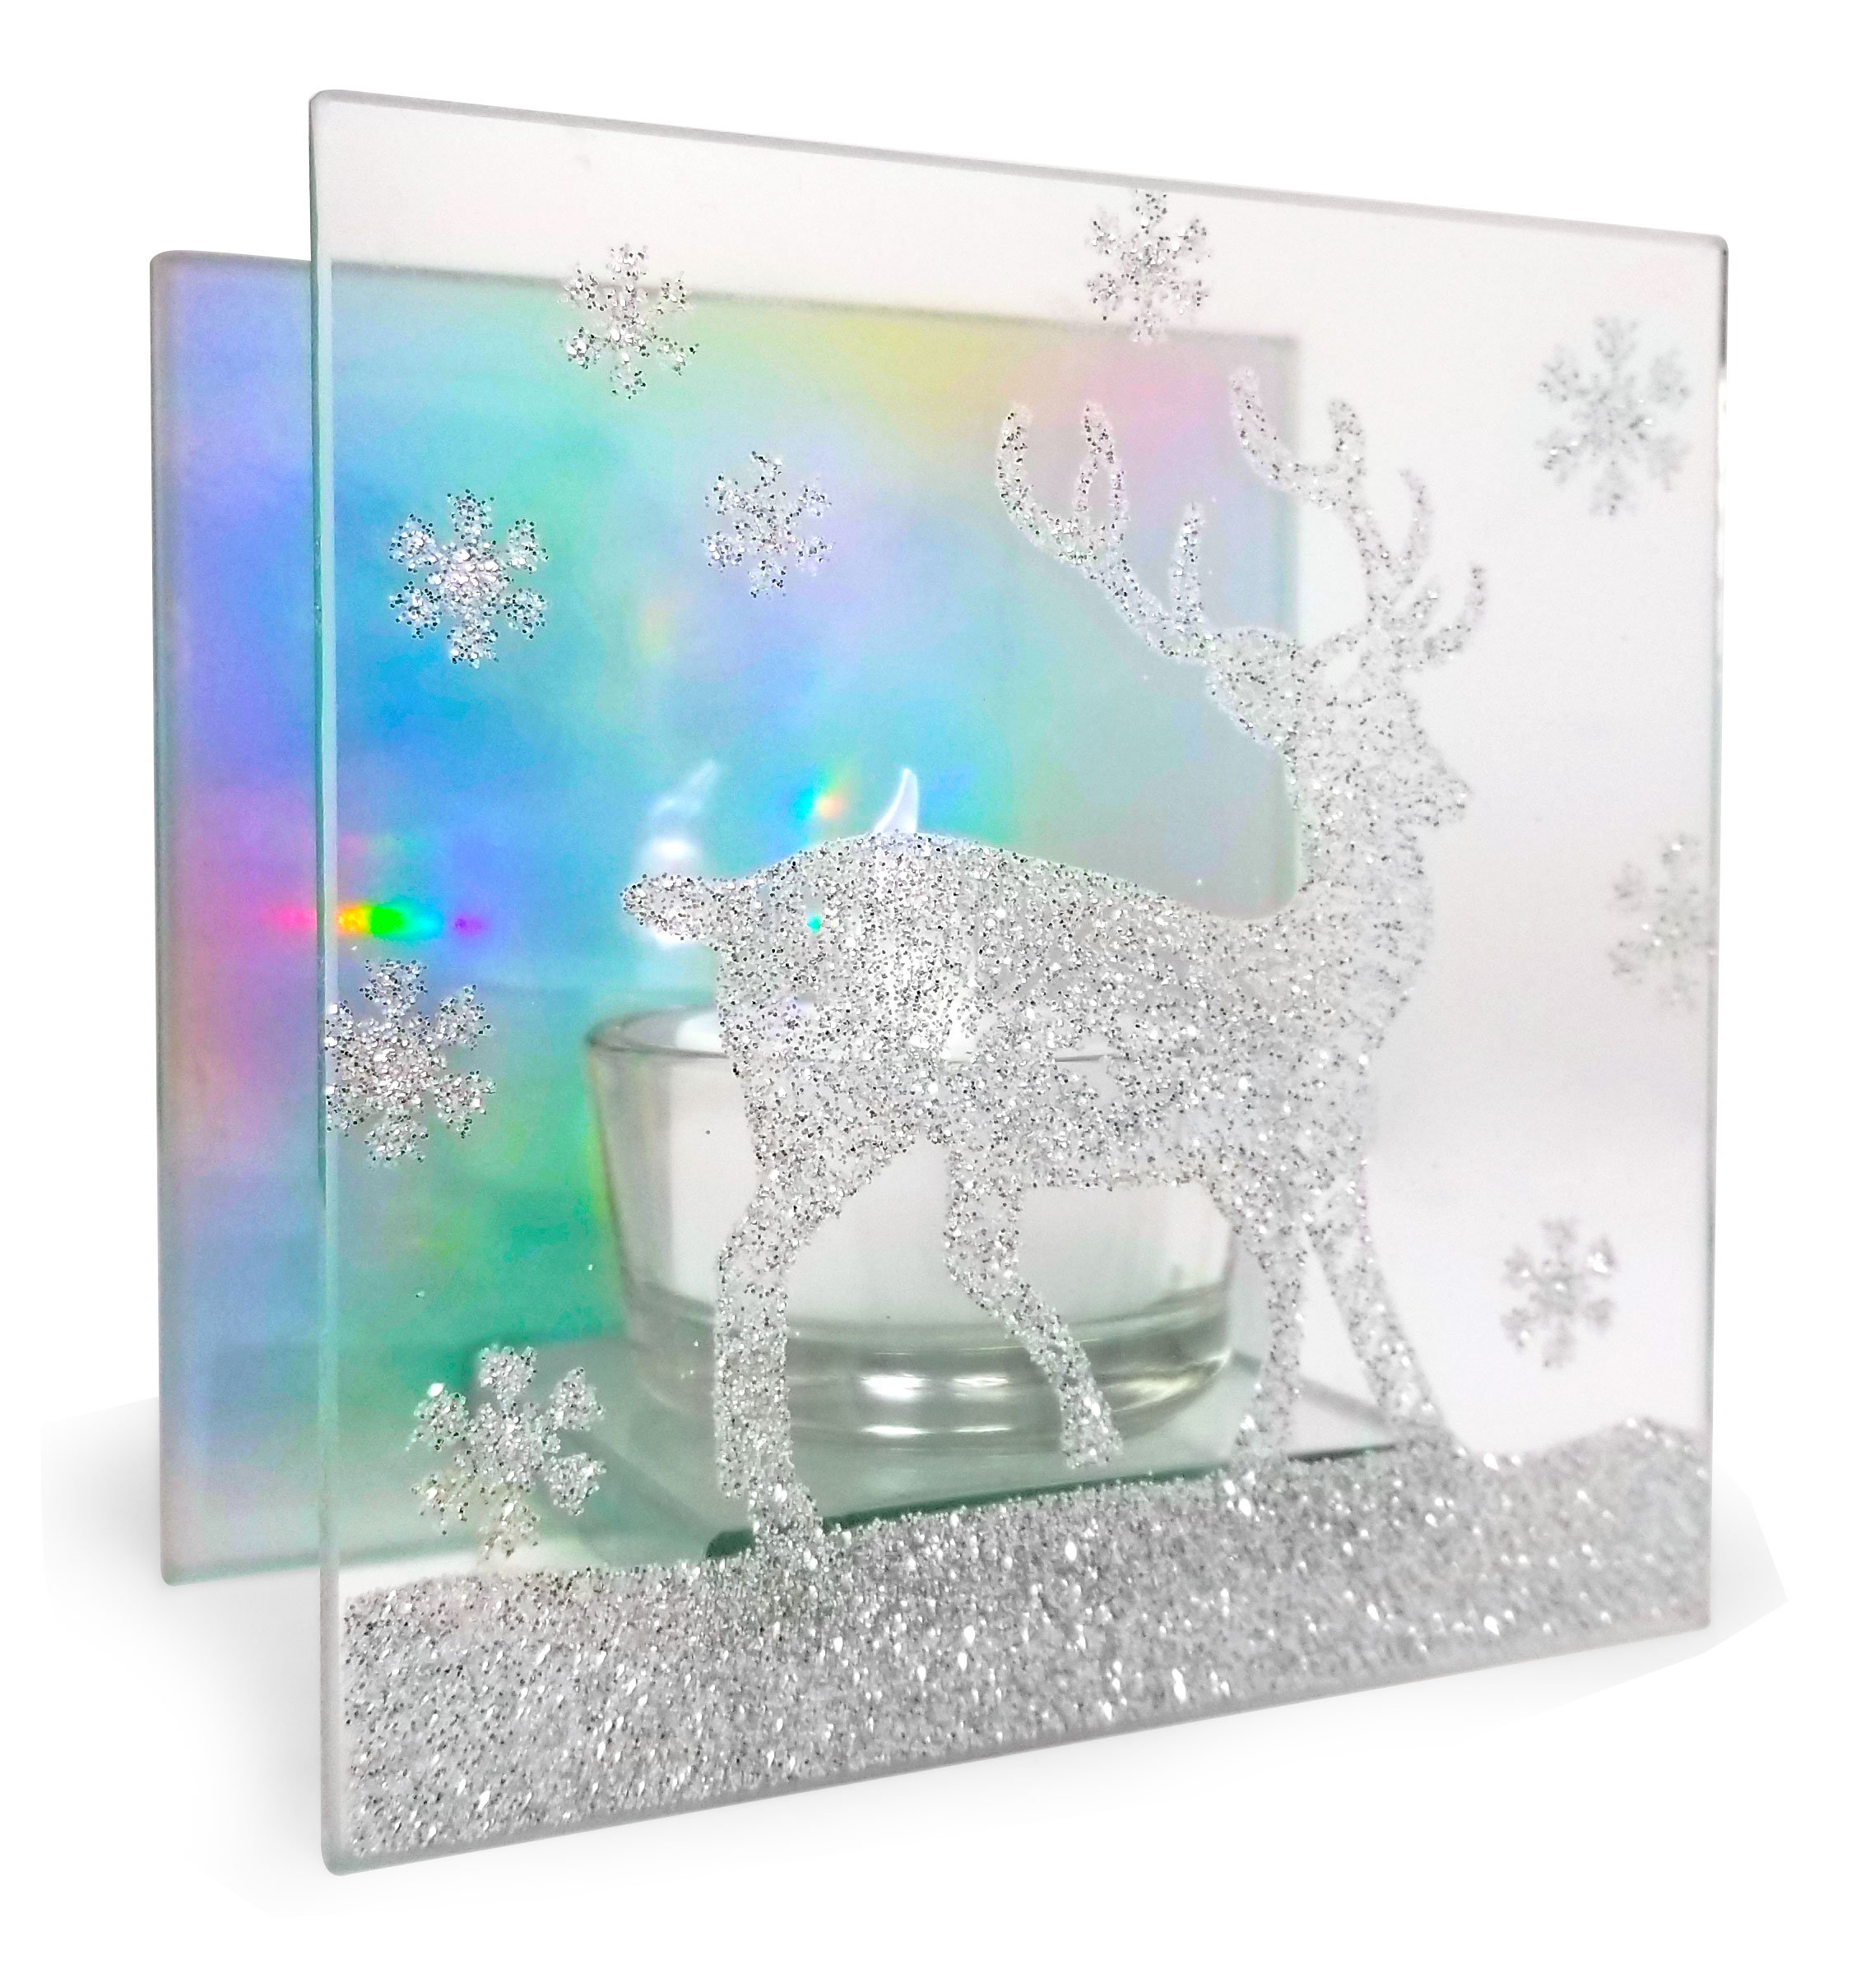 Banberry Designs Christmas Candleholder - Glittered Reindeer Silhouette on a Glass Infinity Holder - Rainbow Reflection Lights